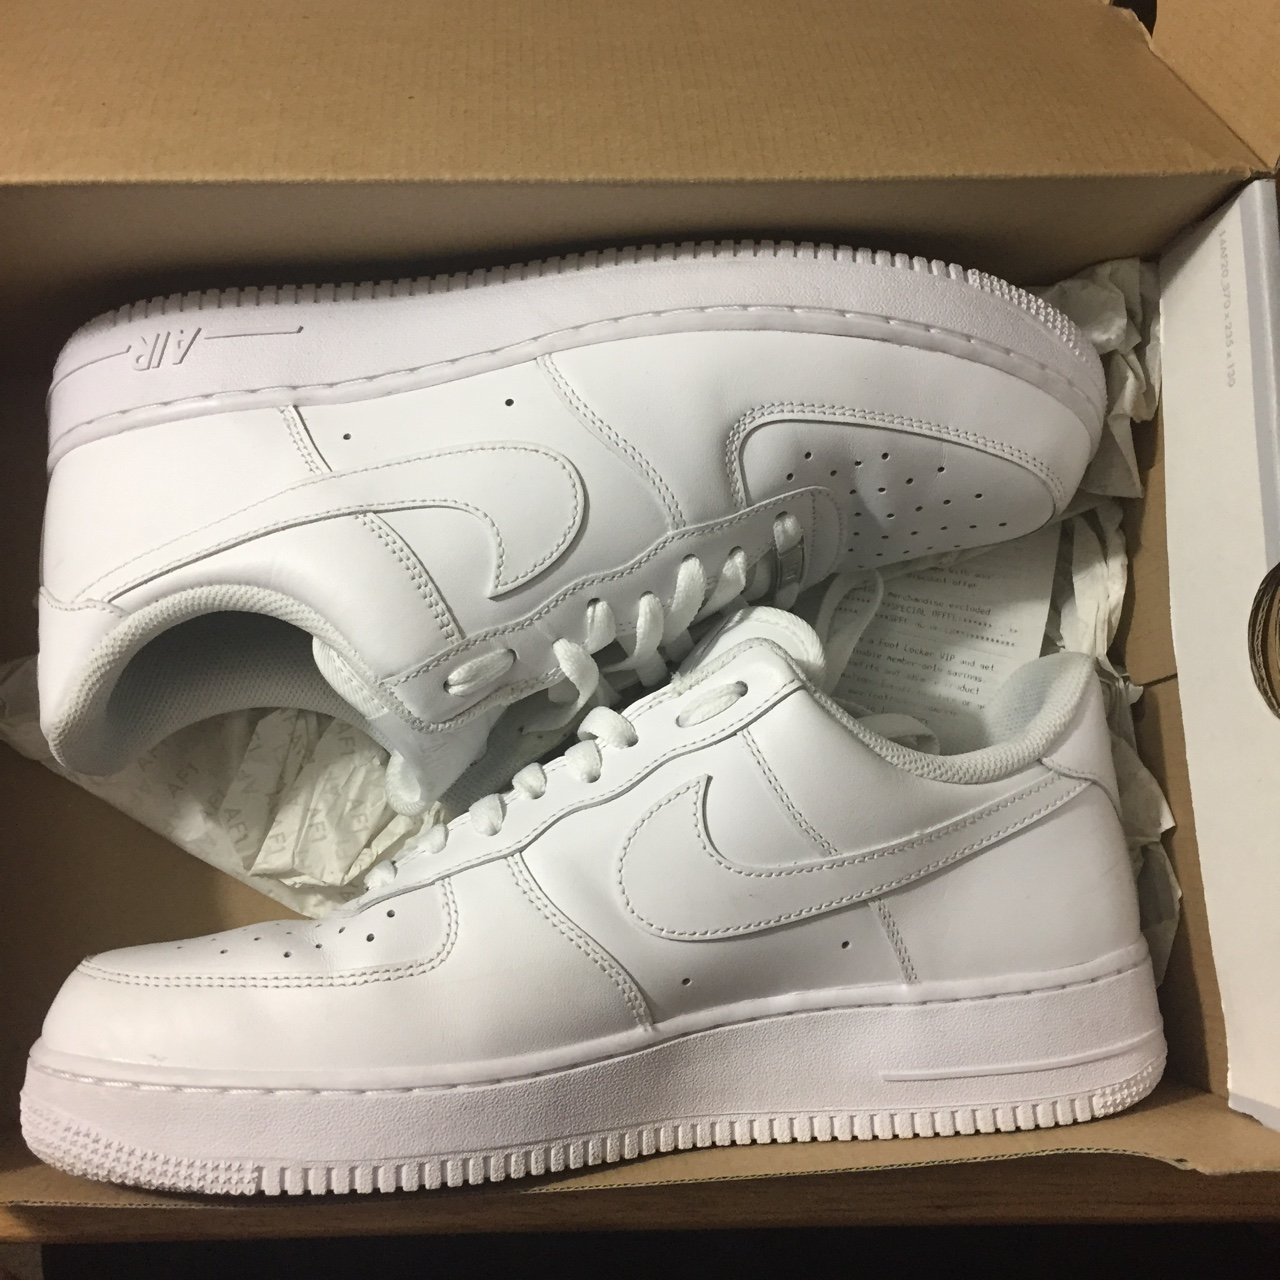 Nike Air Force 1 size 11 Cocaine White